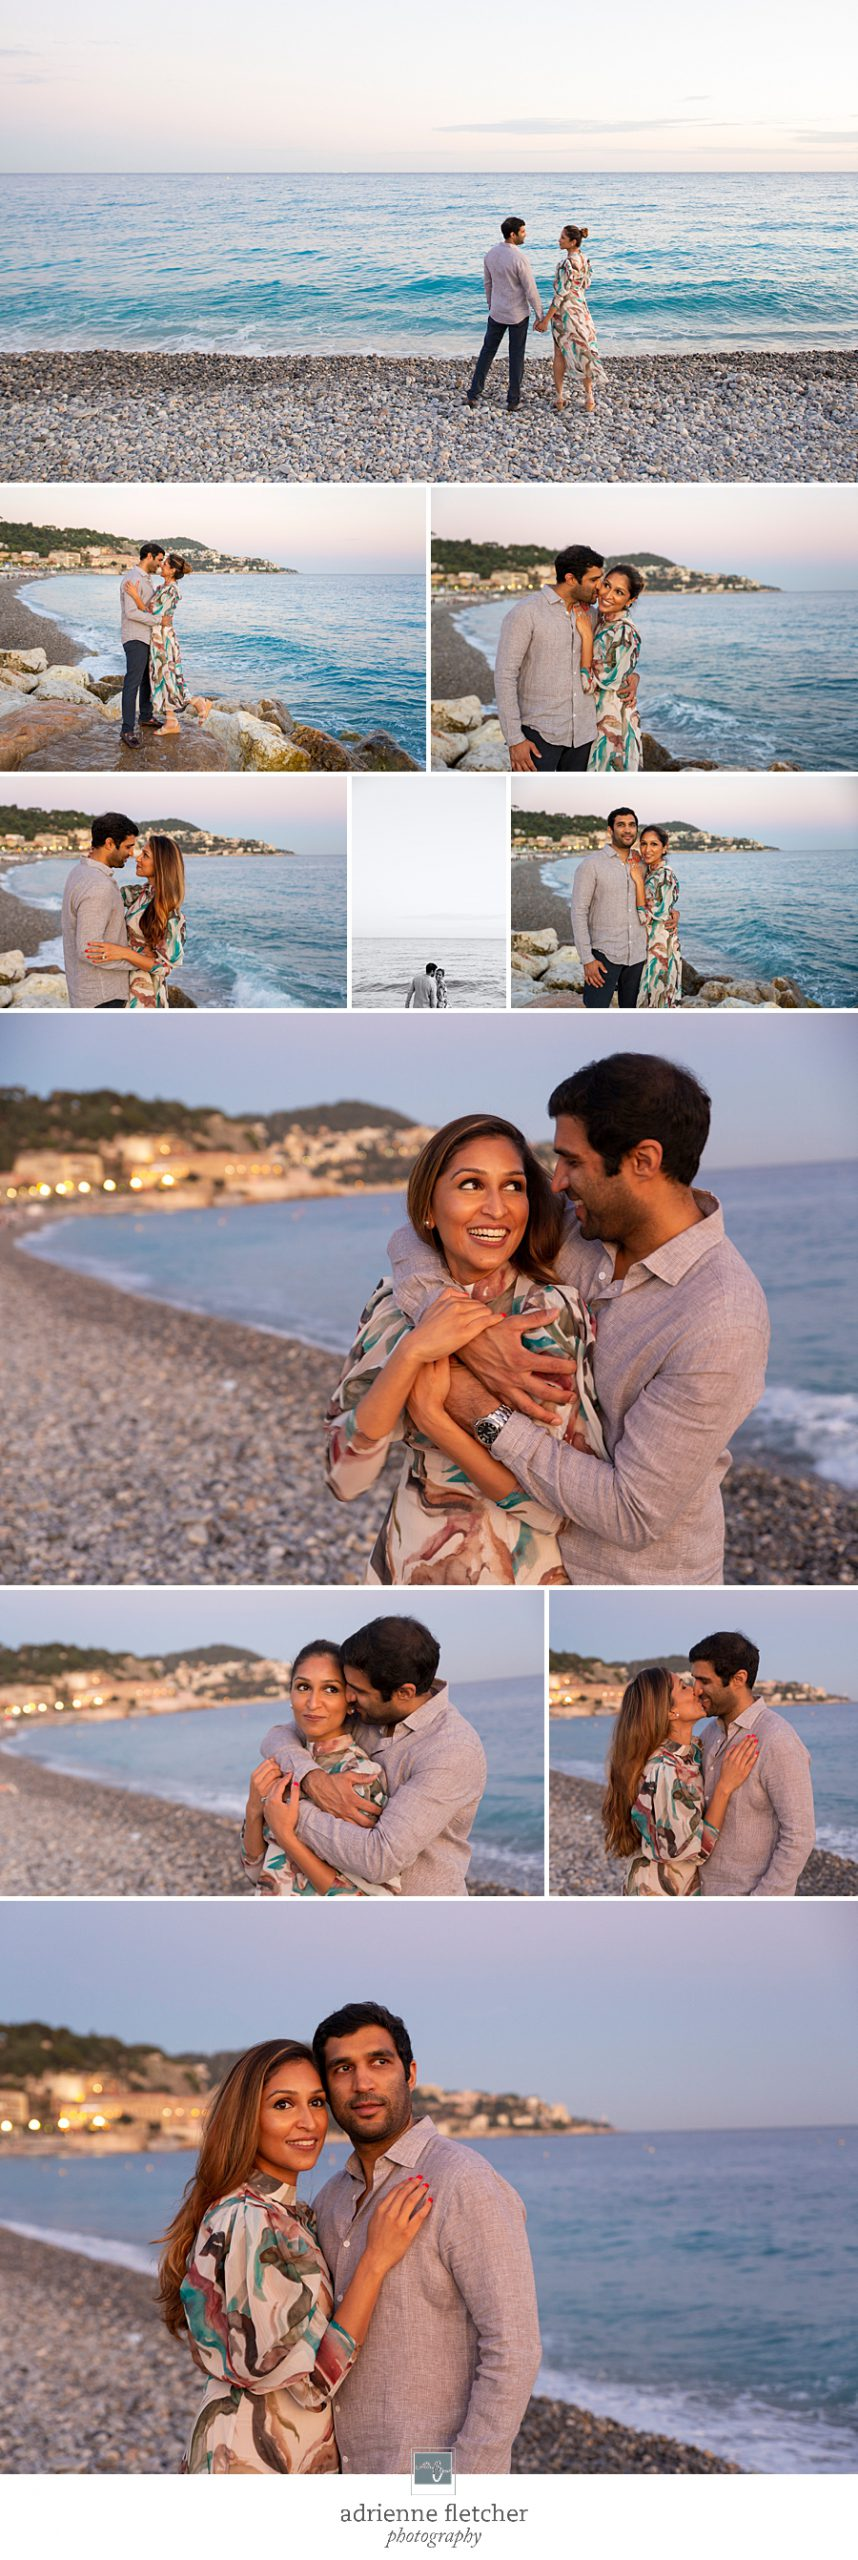 portraits of couple on beach in Nice